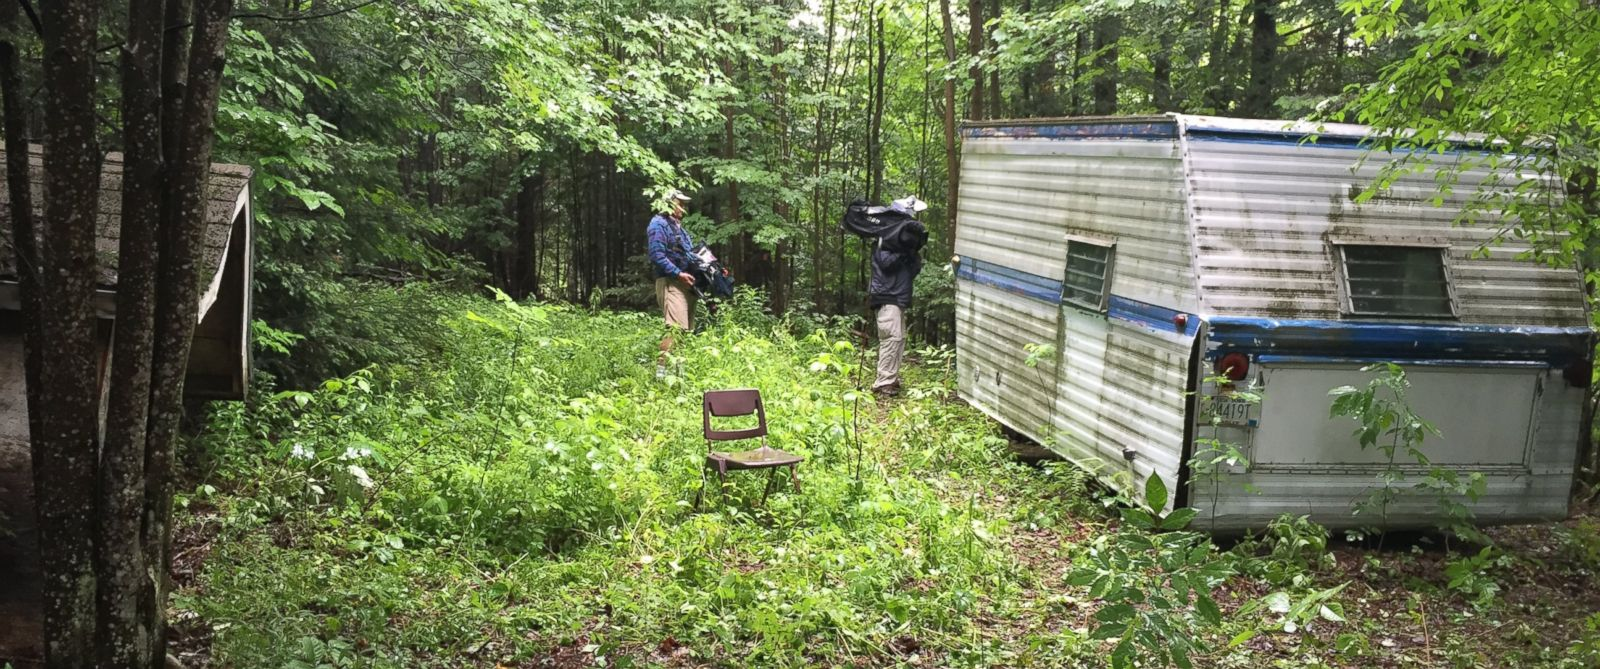 PHOTO: ABC News gets a look at a previously unknown camper that Richard Matt was confirmed to have spent time in while on the run.